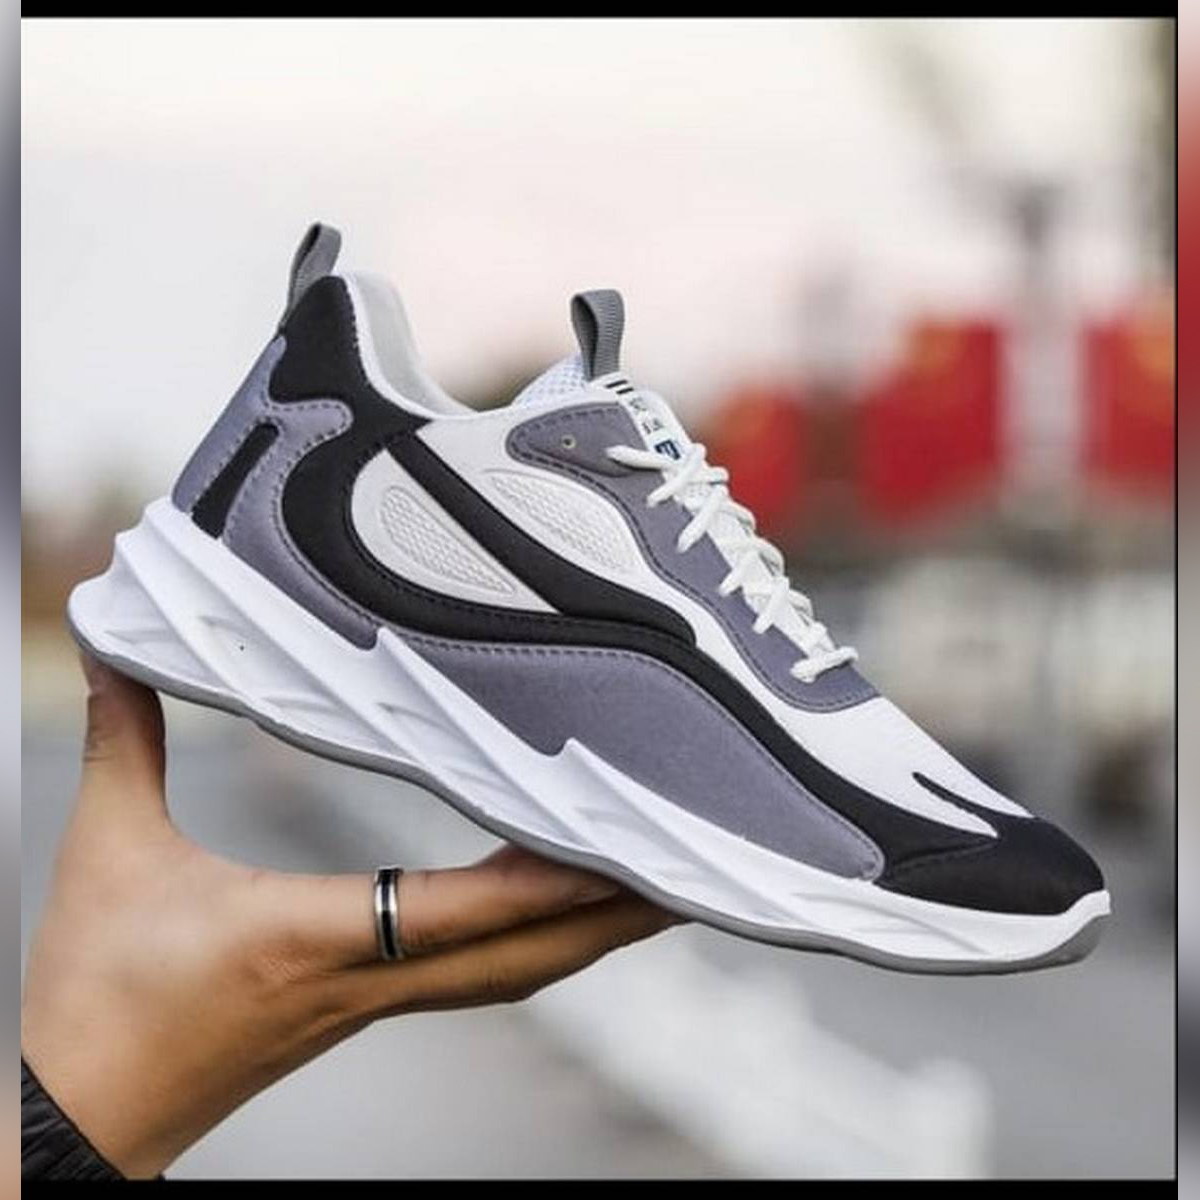 Imported Men's Fashion Shoes for Casual And Party wear Fashion 2021